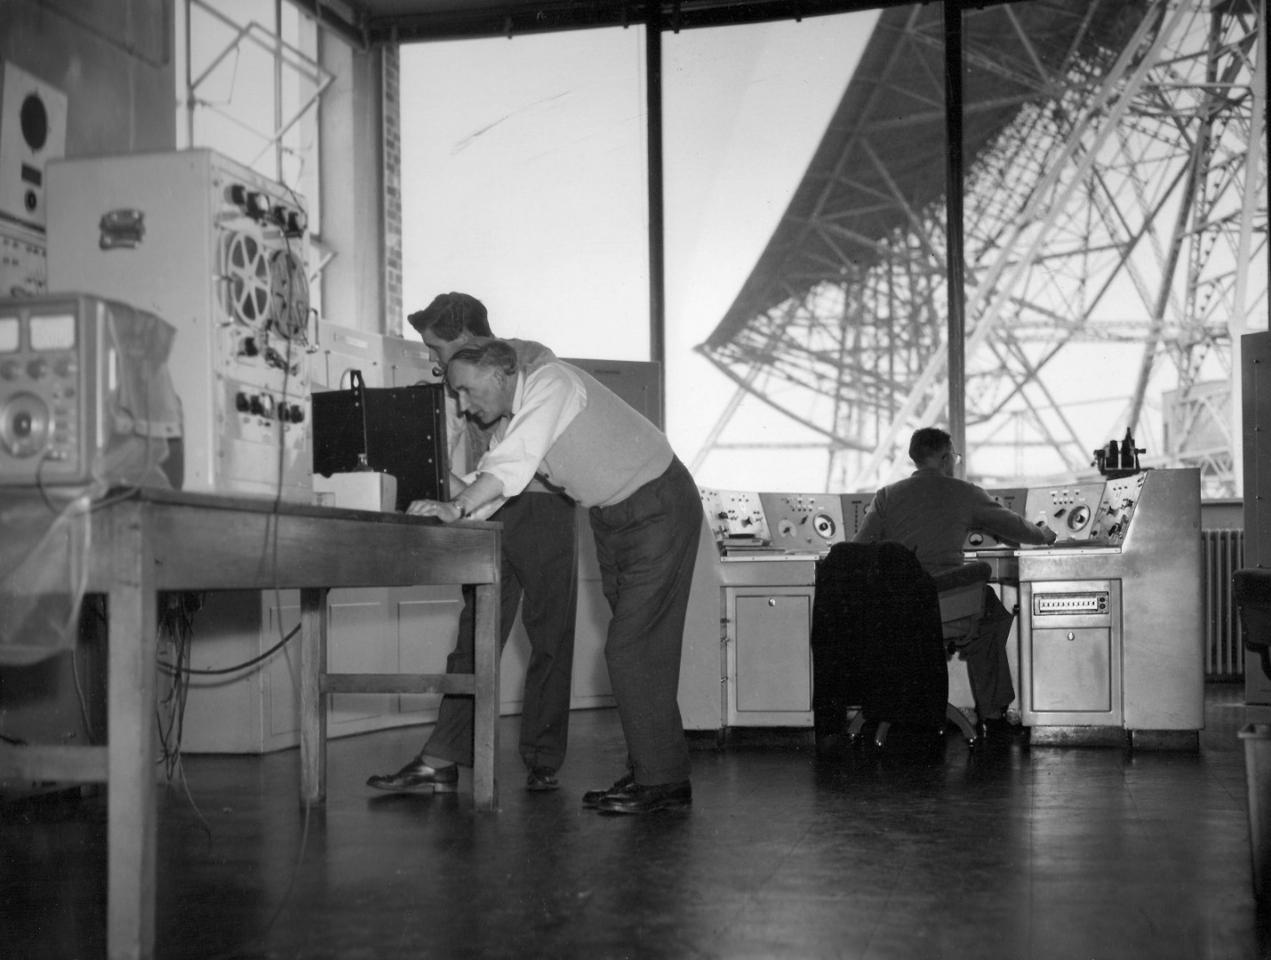 The control room of Jodrell Bank Observatory, where the Zond 6 audio was recorded